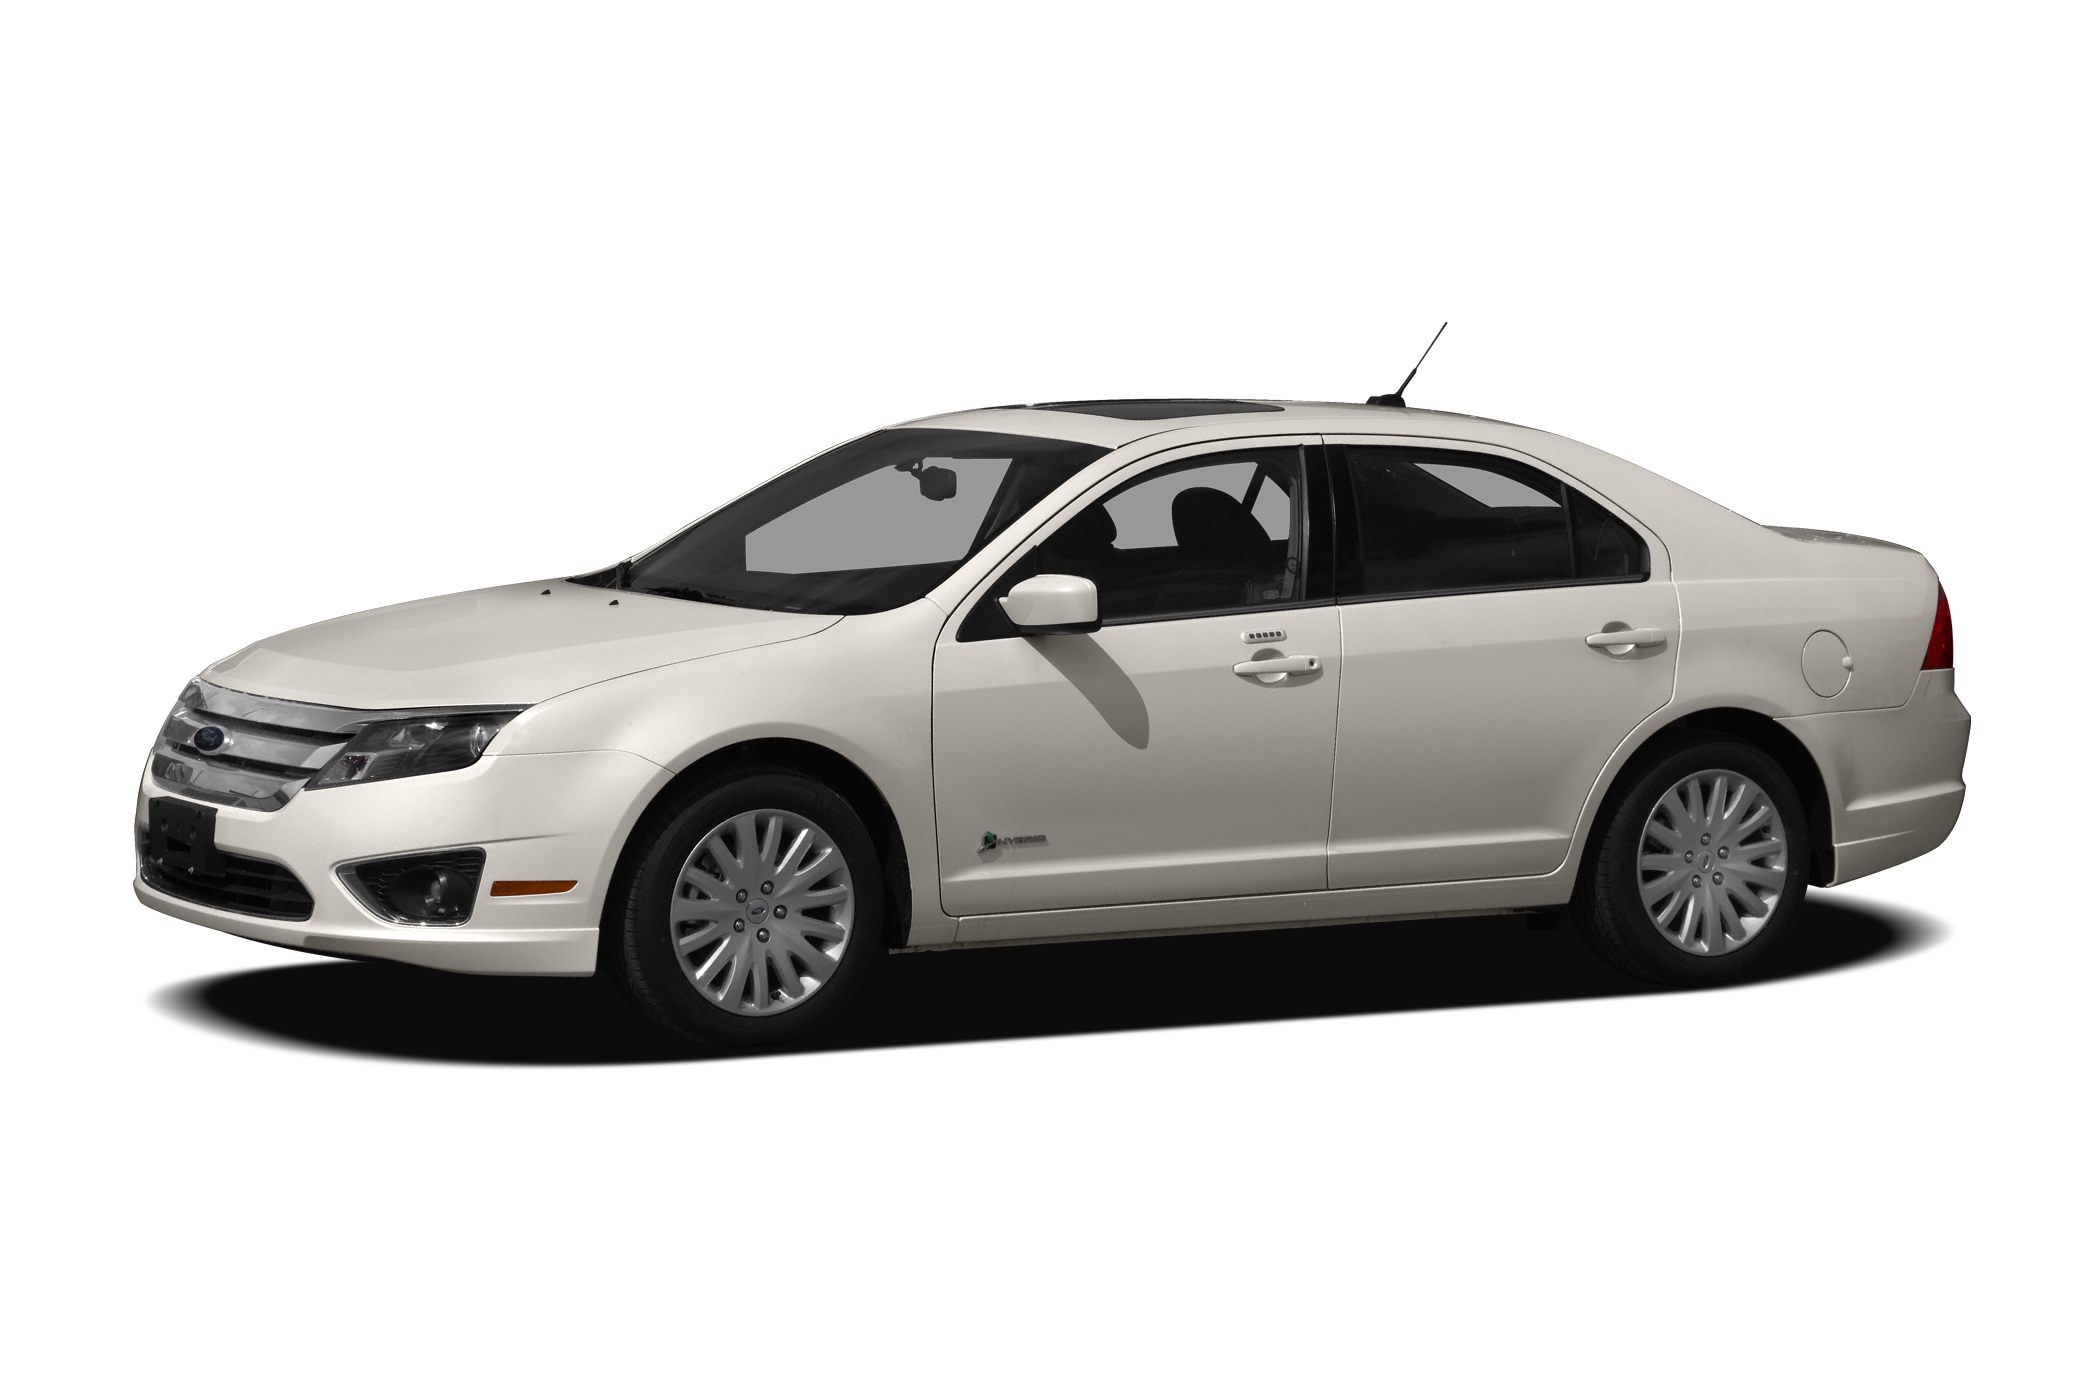 2010 Ford Fusion Hybrid Sedan for sale in Springfield for $17,900 with 30,684 miles